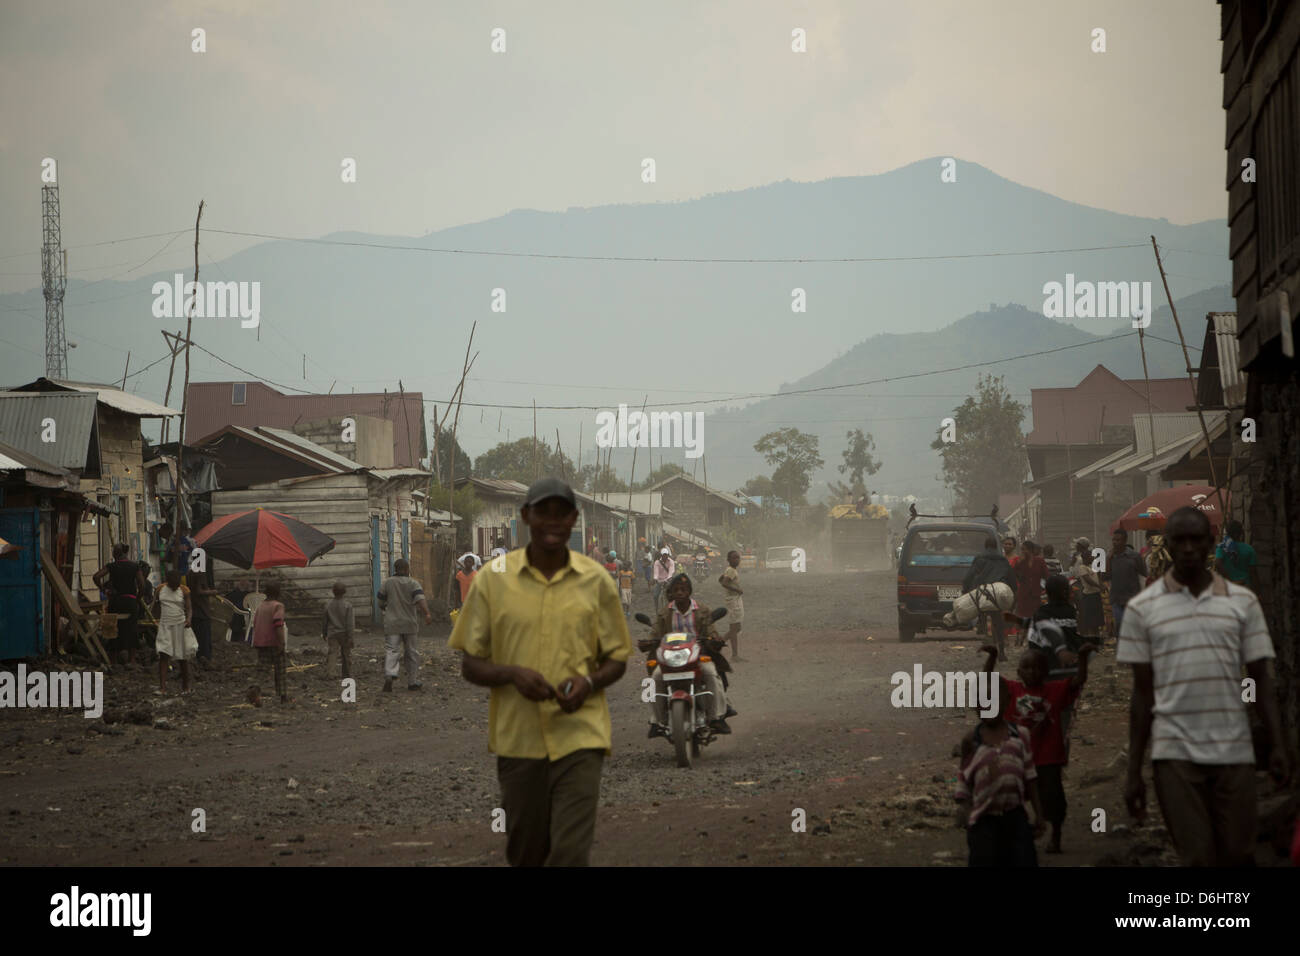 Car and pedestrian traffic move through the dusty streets of Goma, DRC. - Stock Image